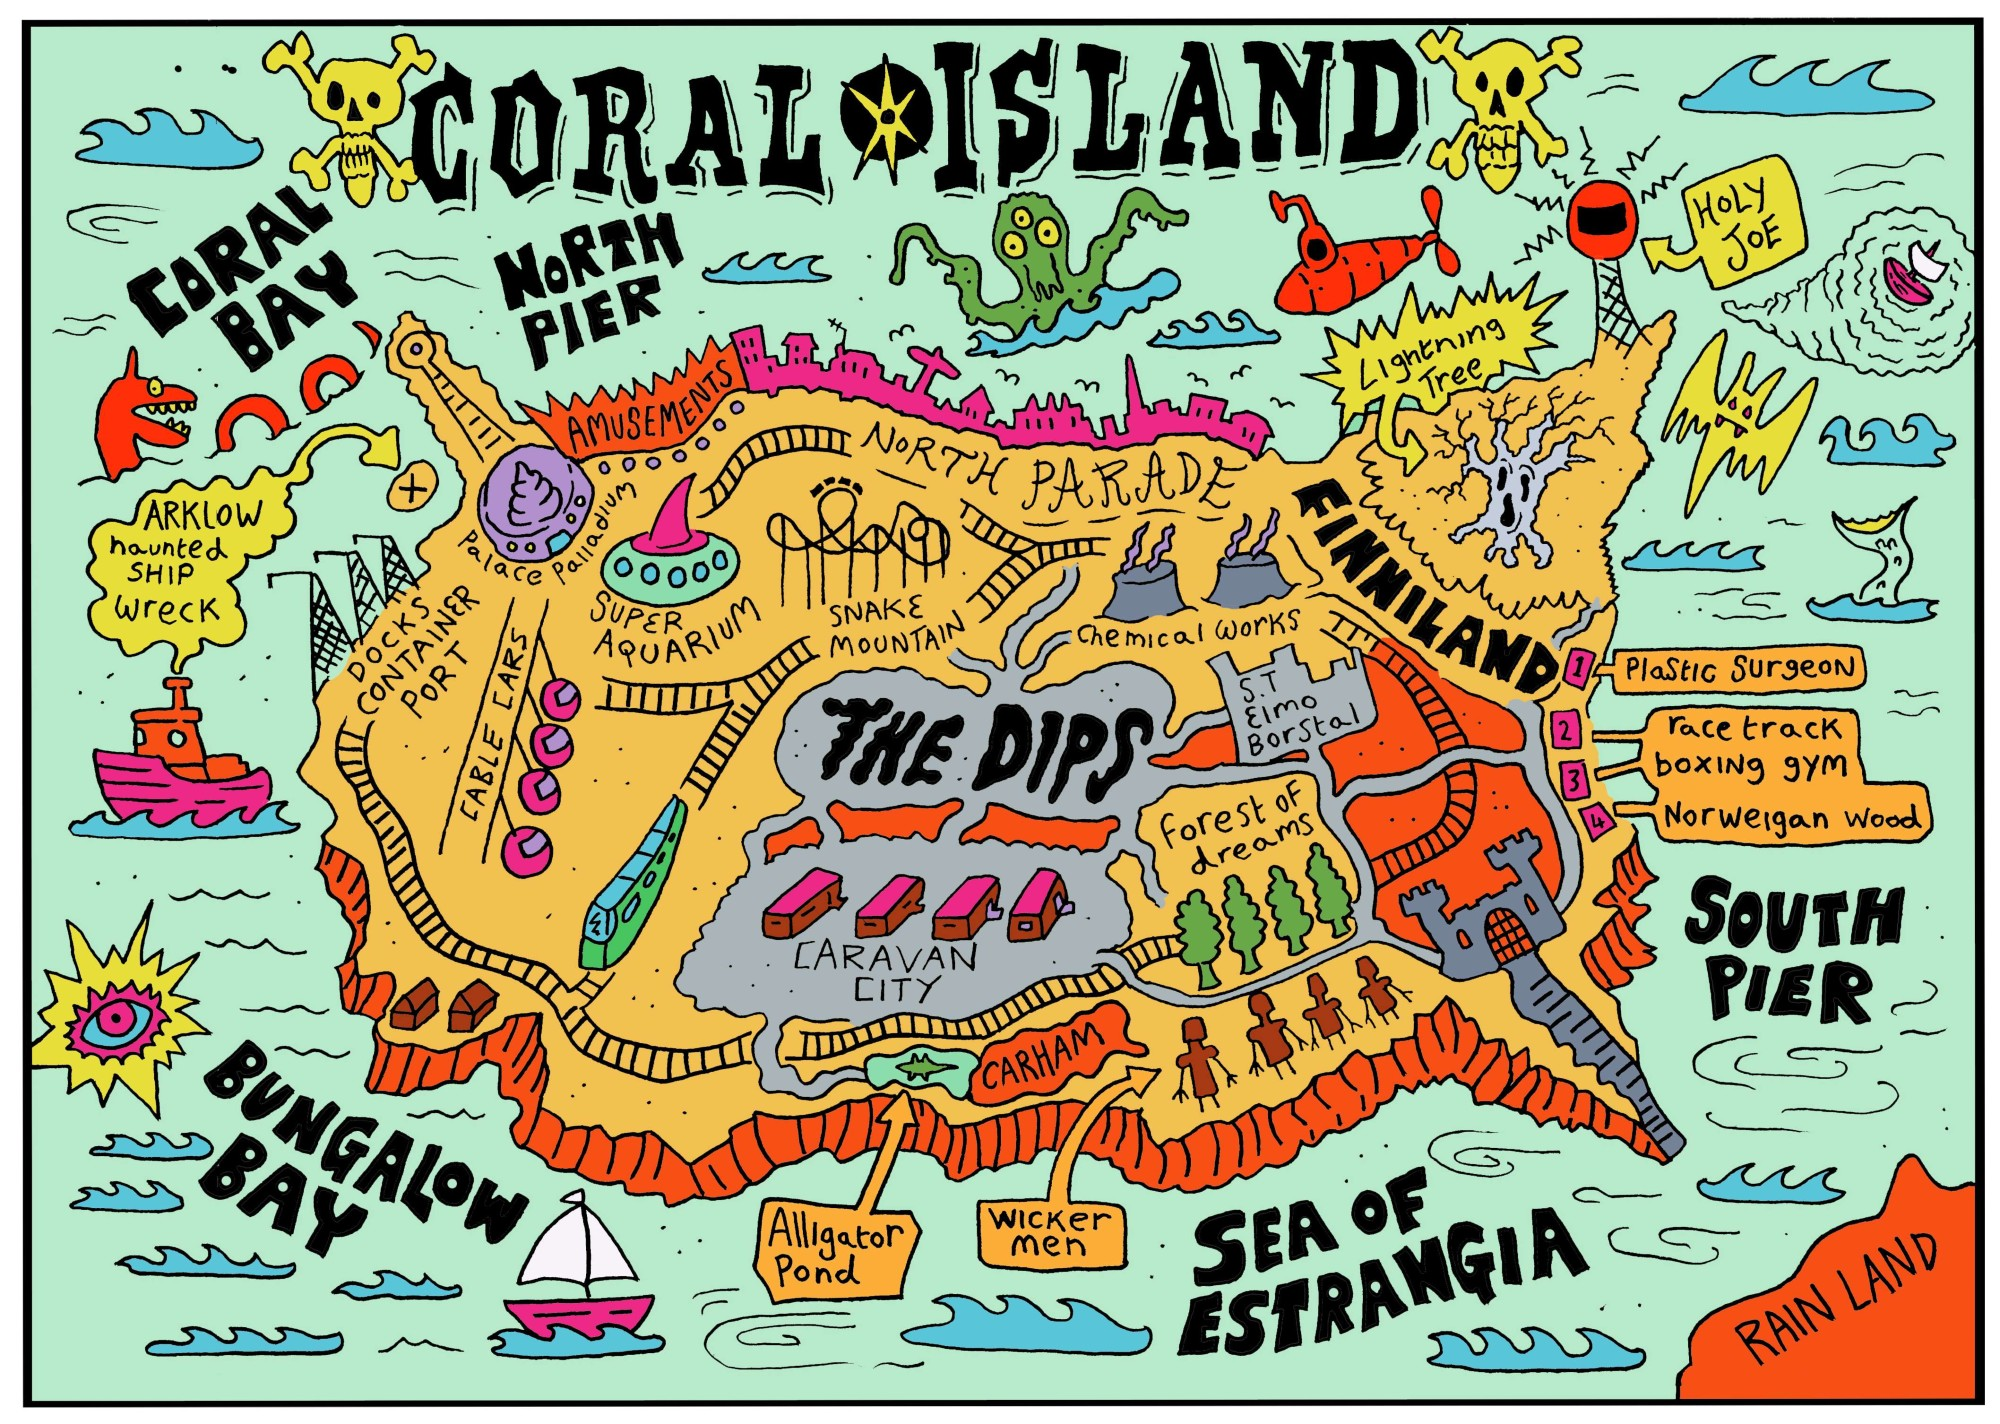 The Coral - Coral Island Map